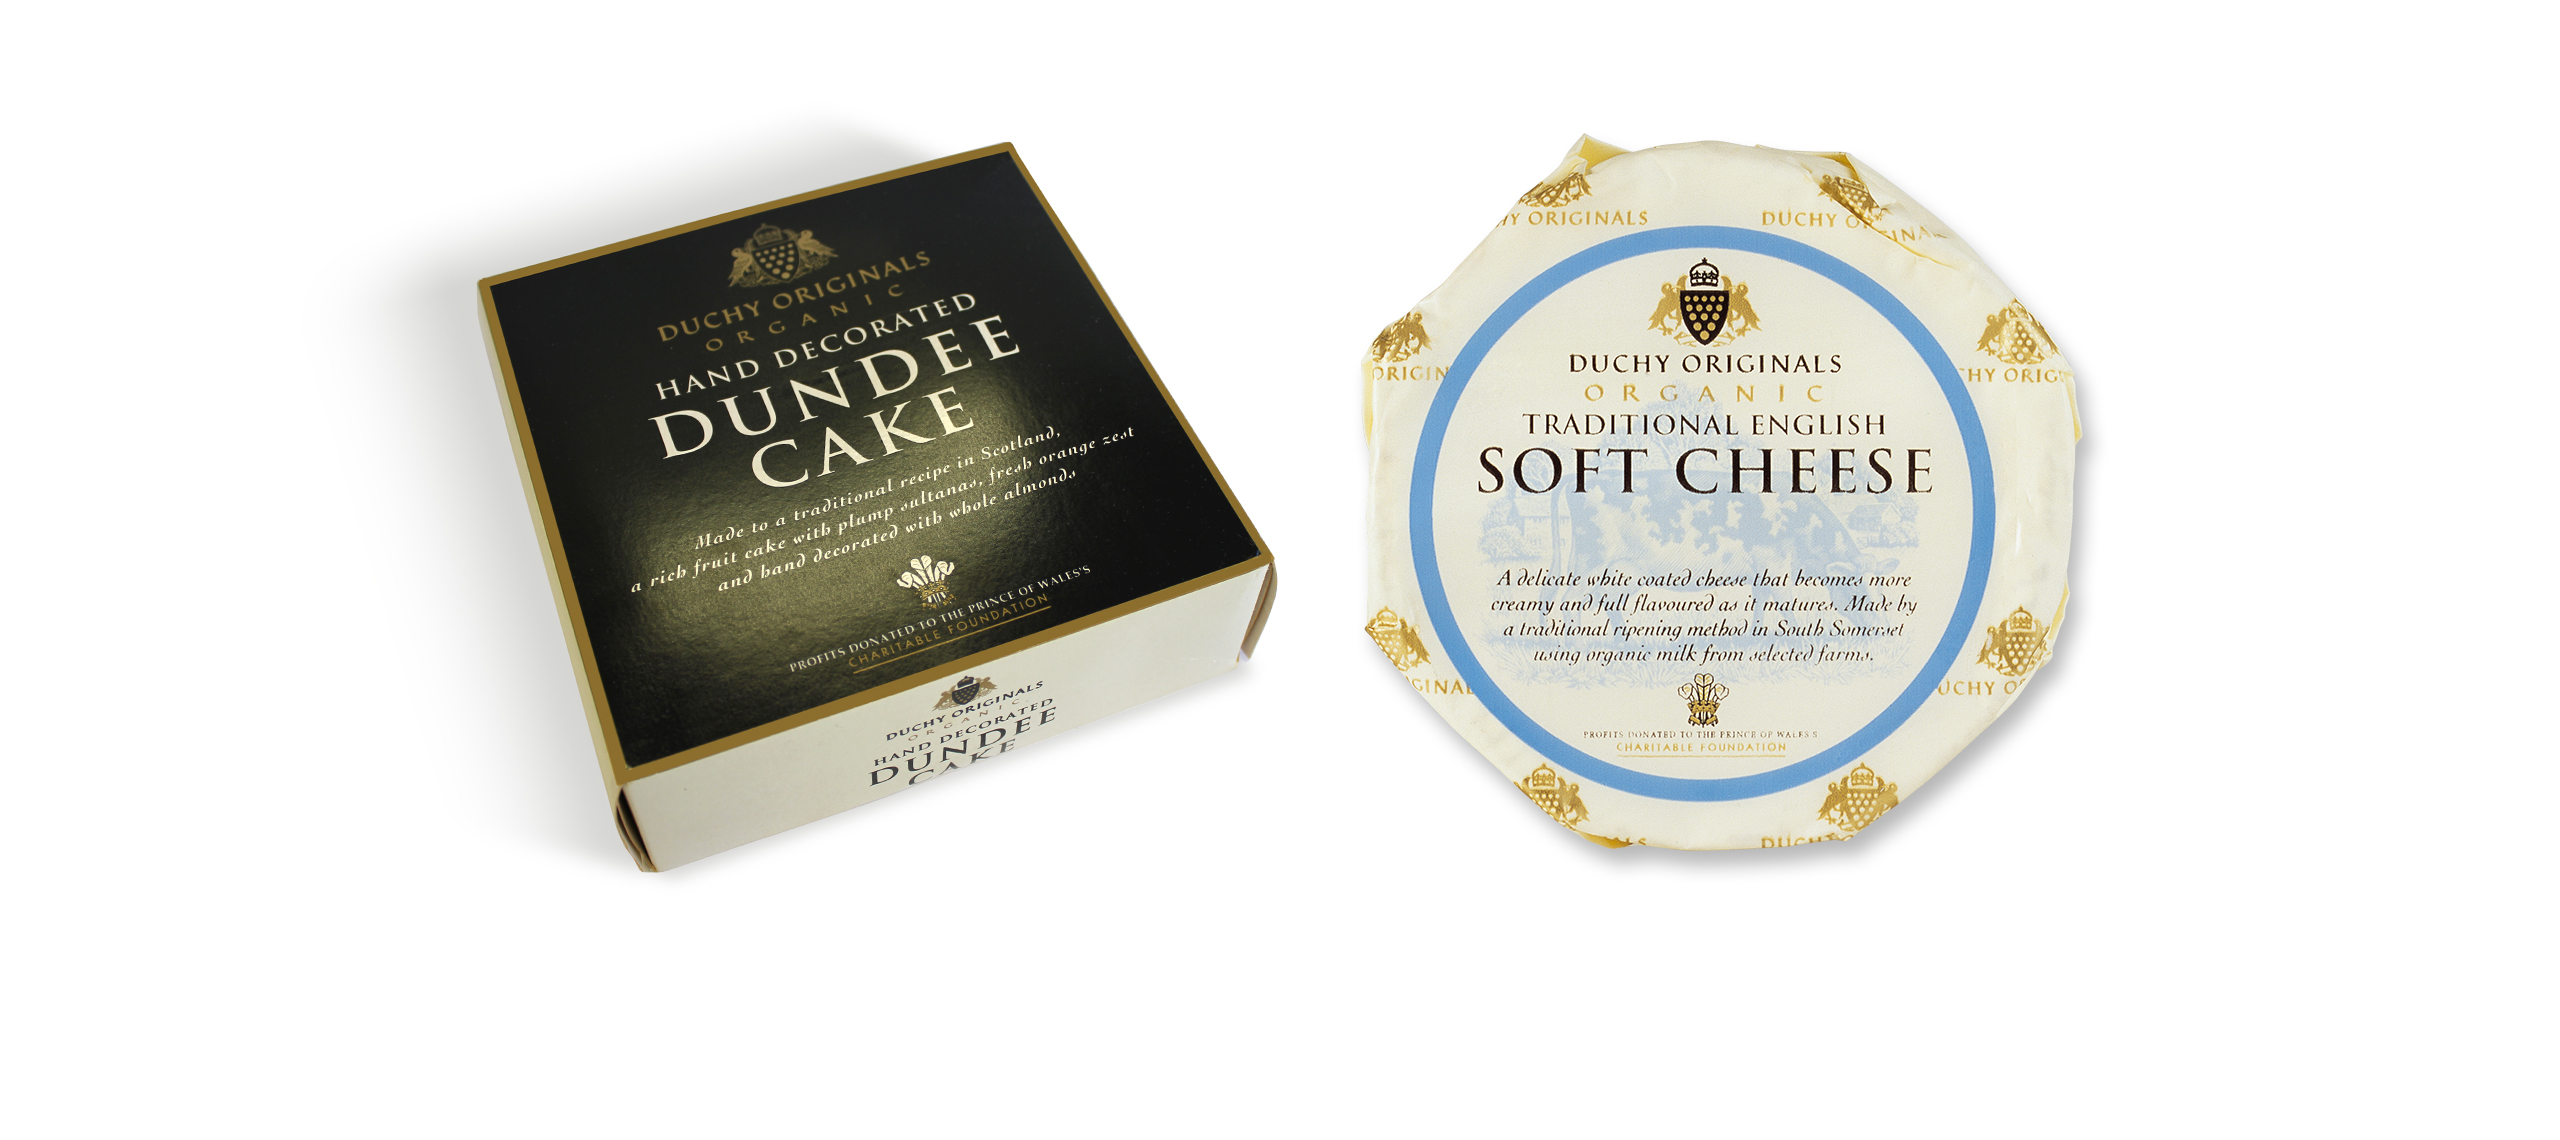 packaging design for dundee cake and traditional english soft cheese